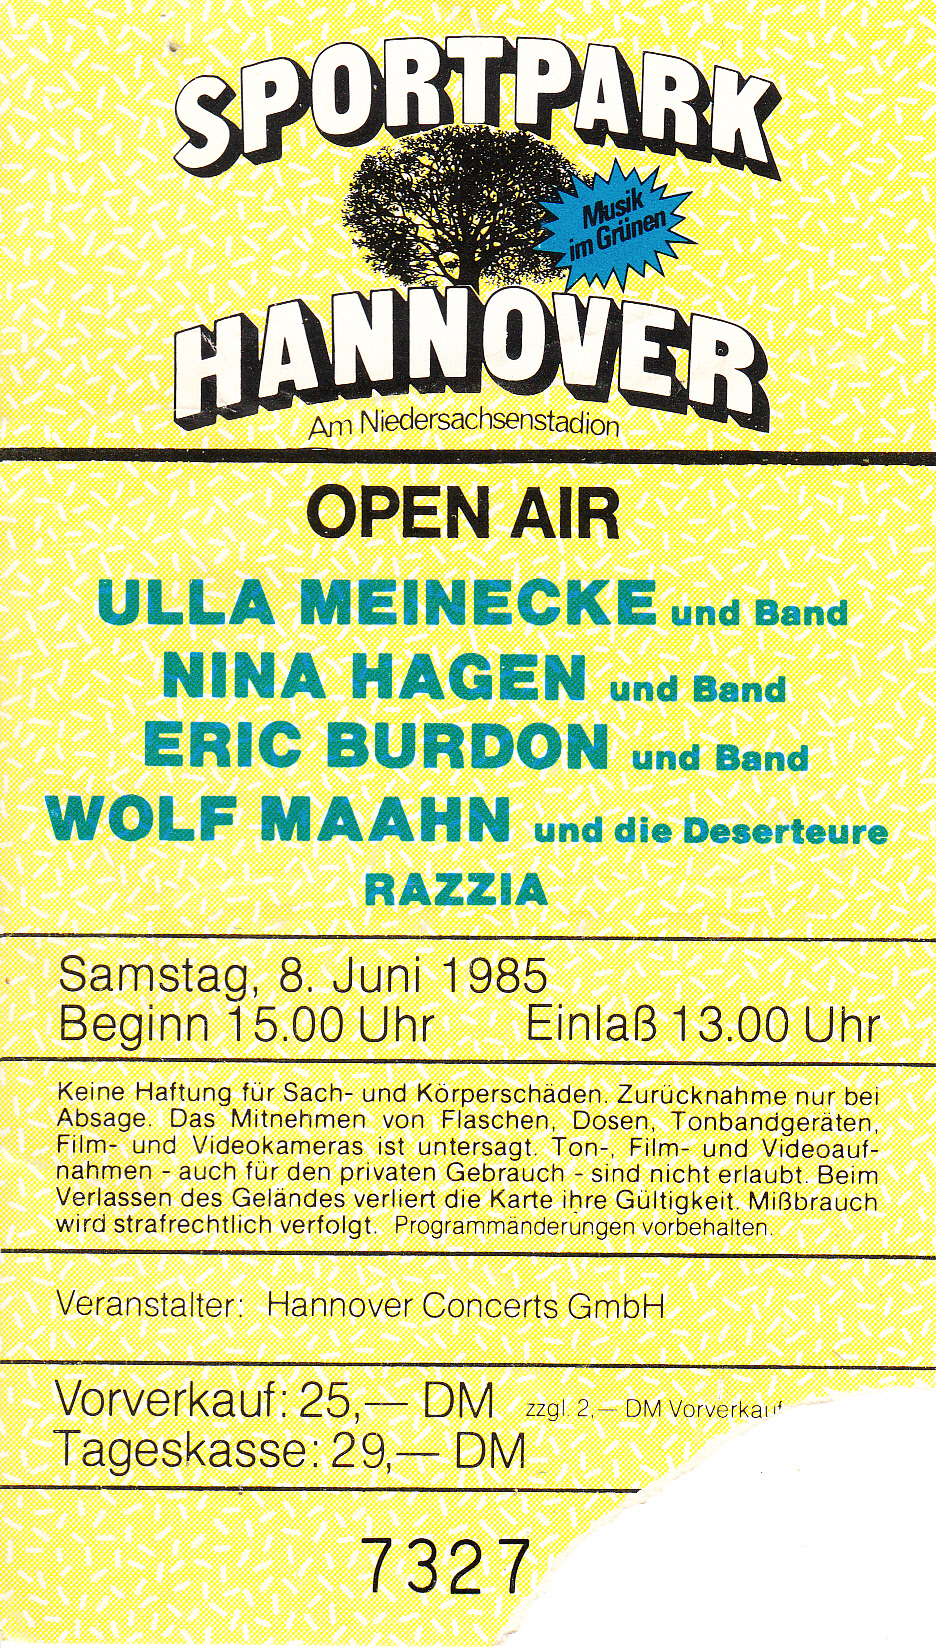 sportpark-hannover-open-air-08-06-1985-wolf-maahn-ticket-front.jpg